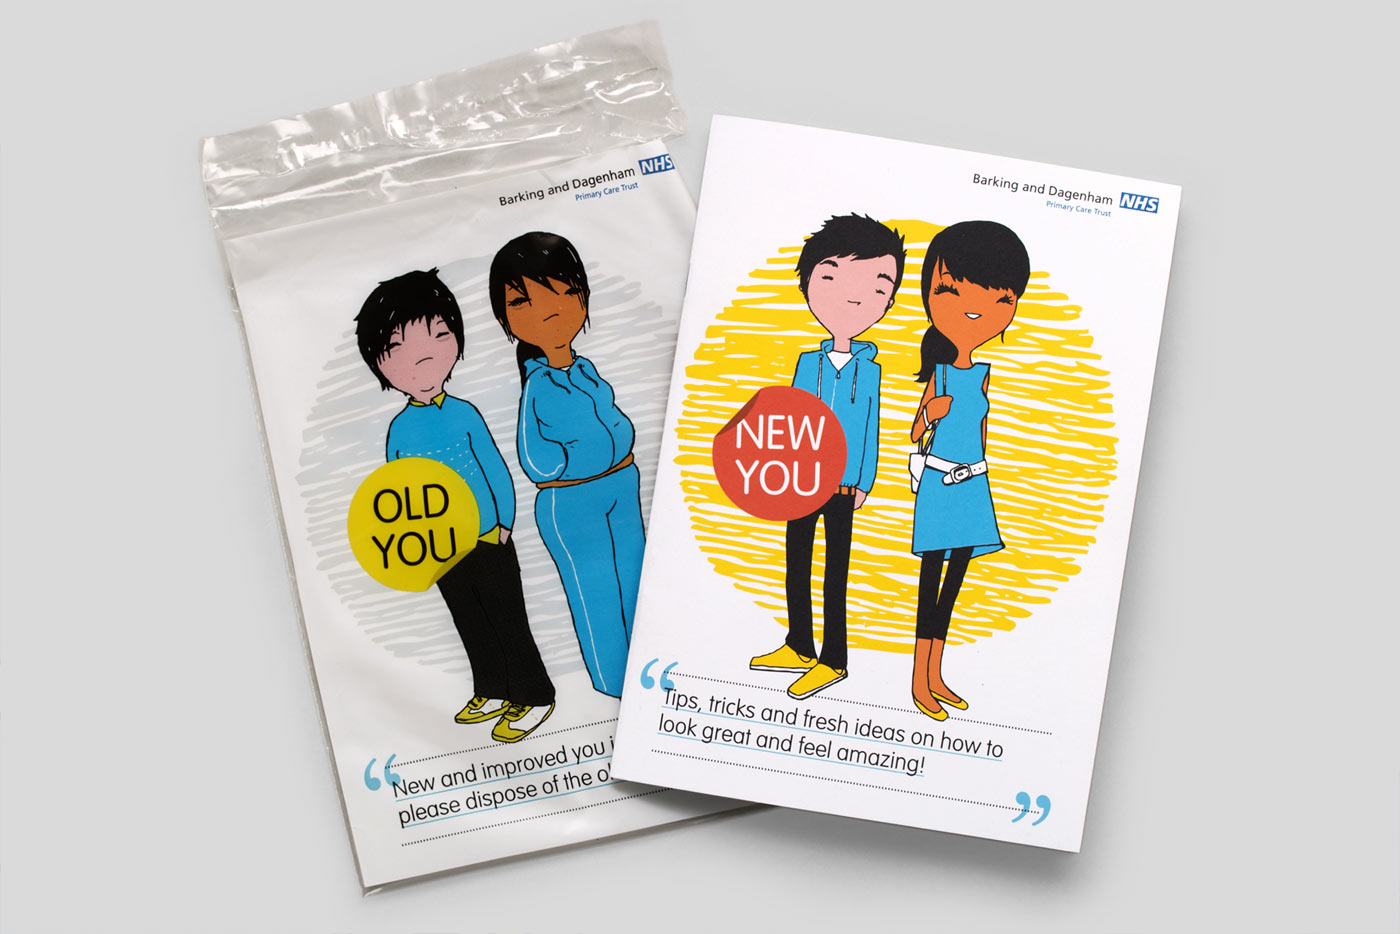 NHS New You 01